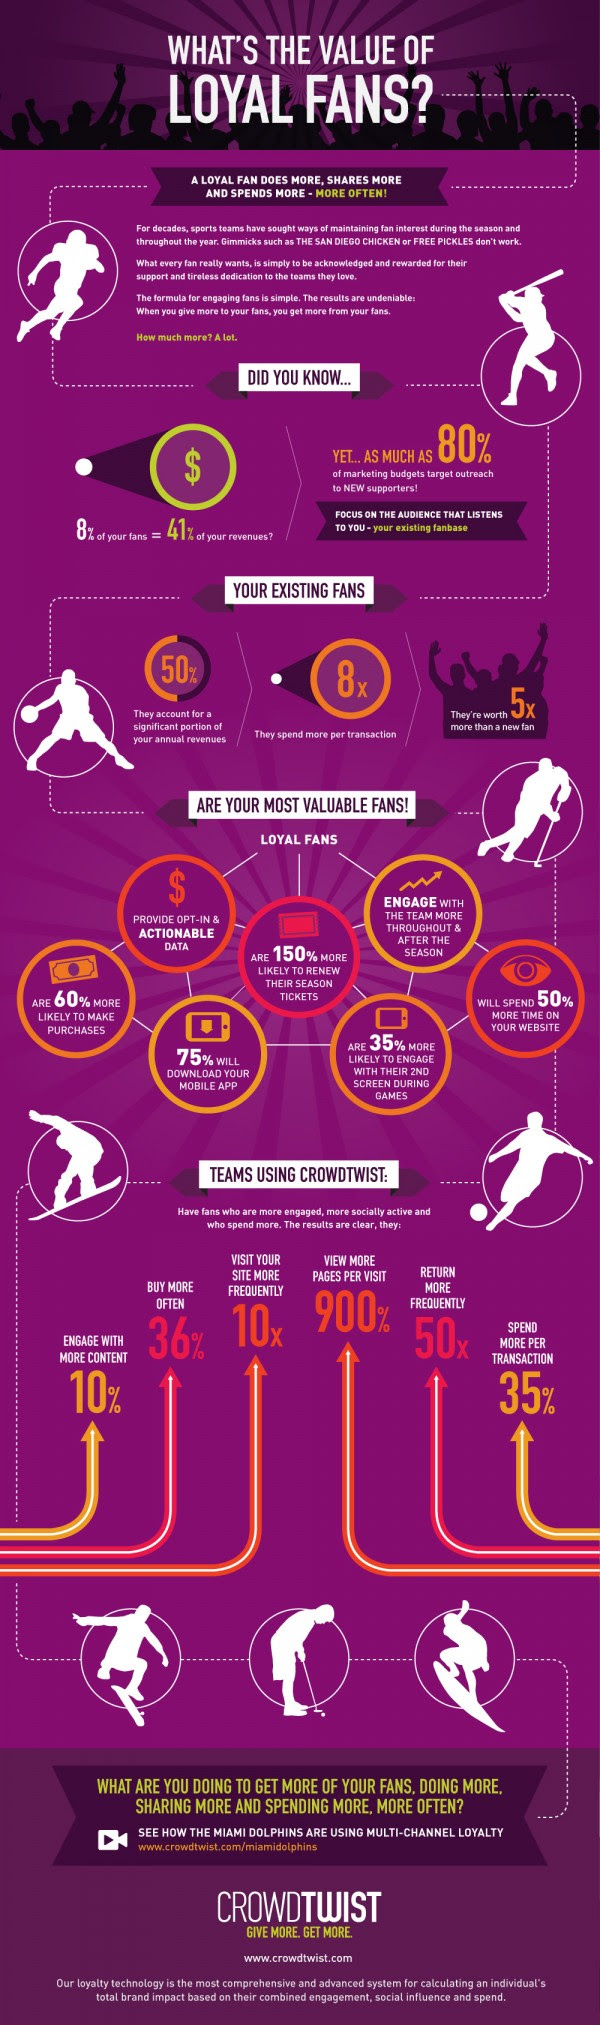 Infographic: What's the Value of Loyal Fans? [Infographic]